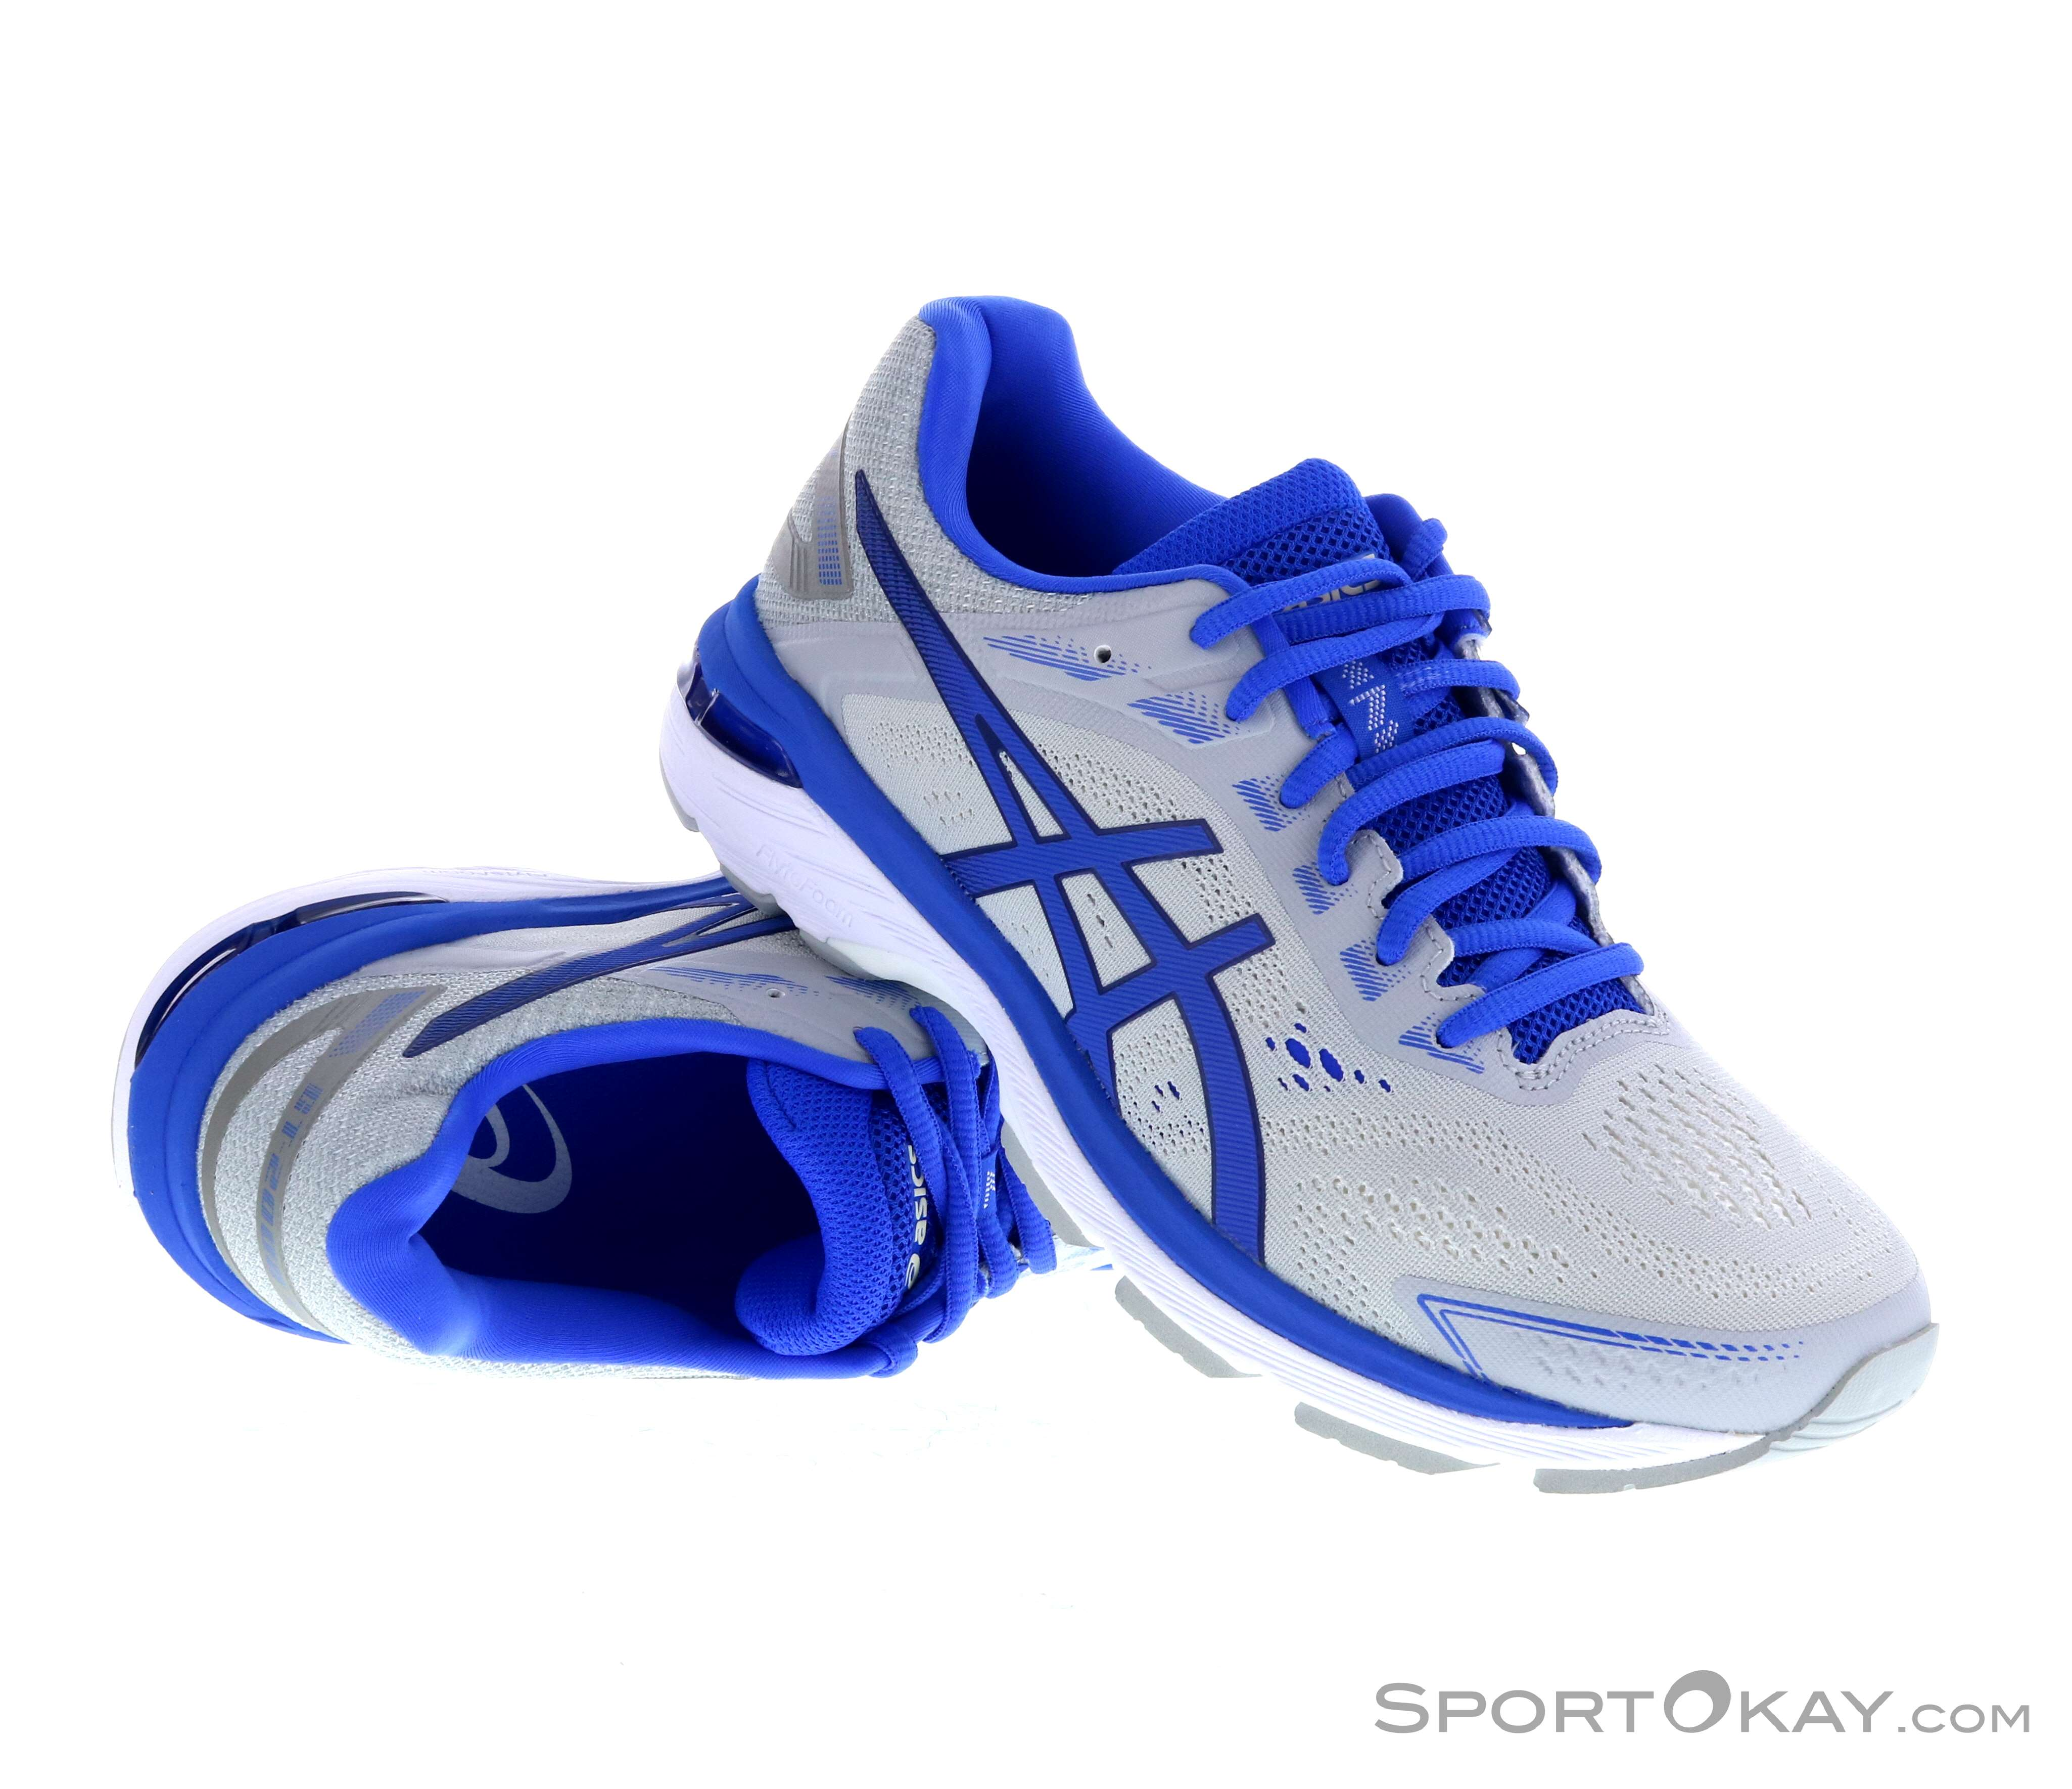 su Discriminazione sessuale Kills  Asics GT-2000 7 Lite-Show Womens Running Shoes - All-Round Running Shoes -  Running Shoes - Running - All